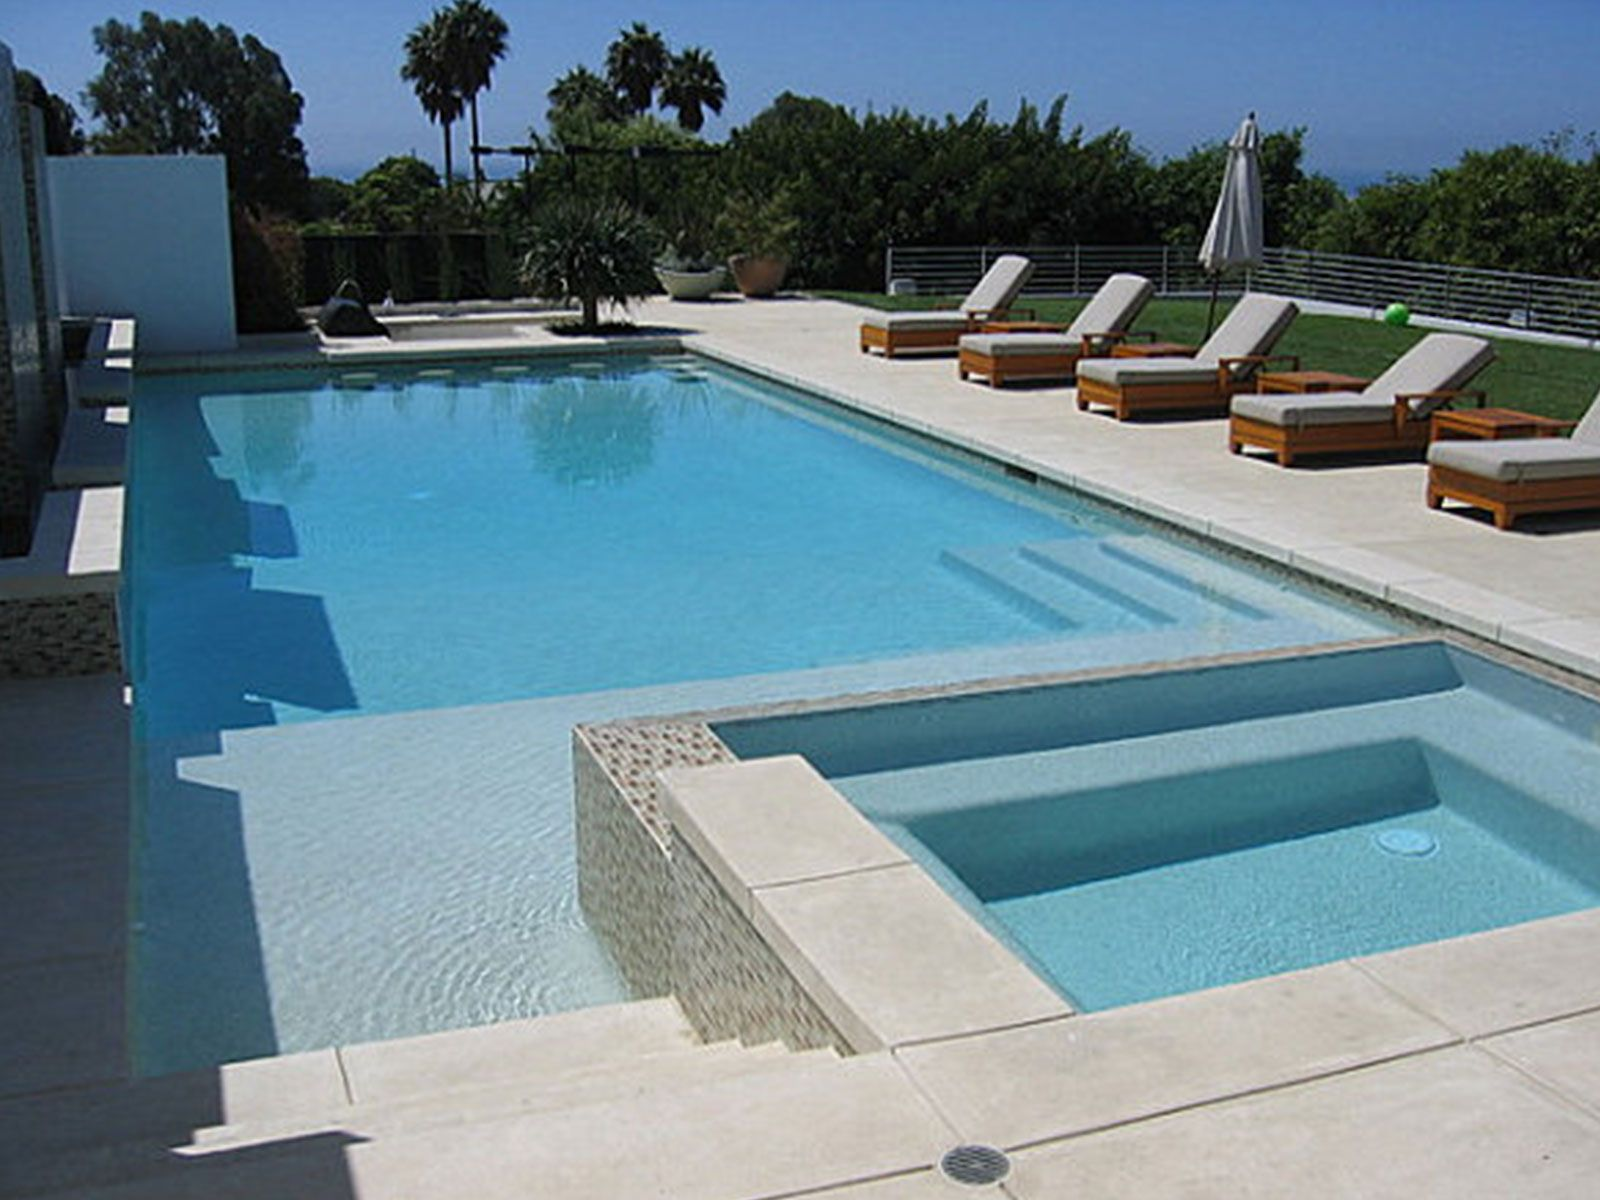 Simple swimming pool design image modern creative swimming for Outside pool designs